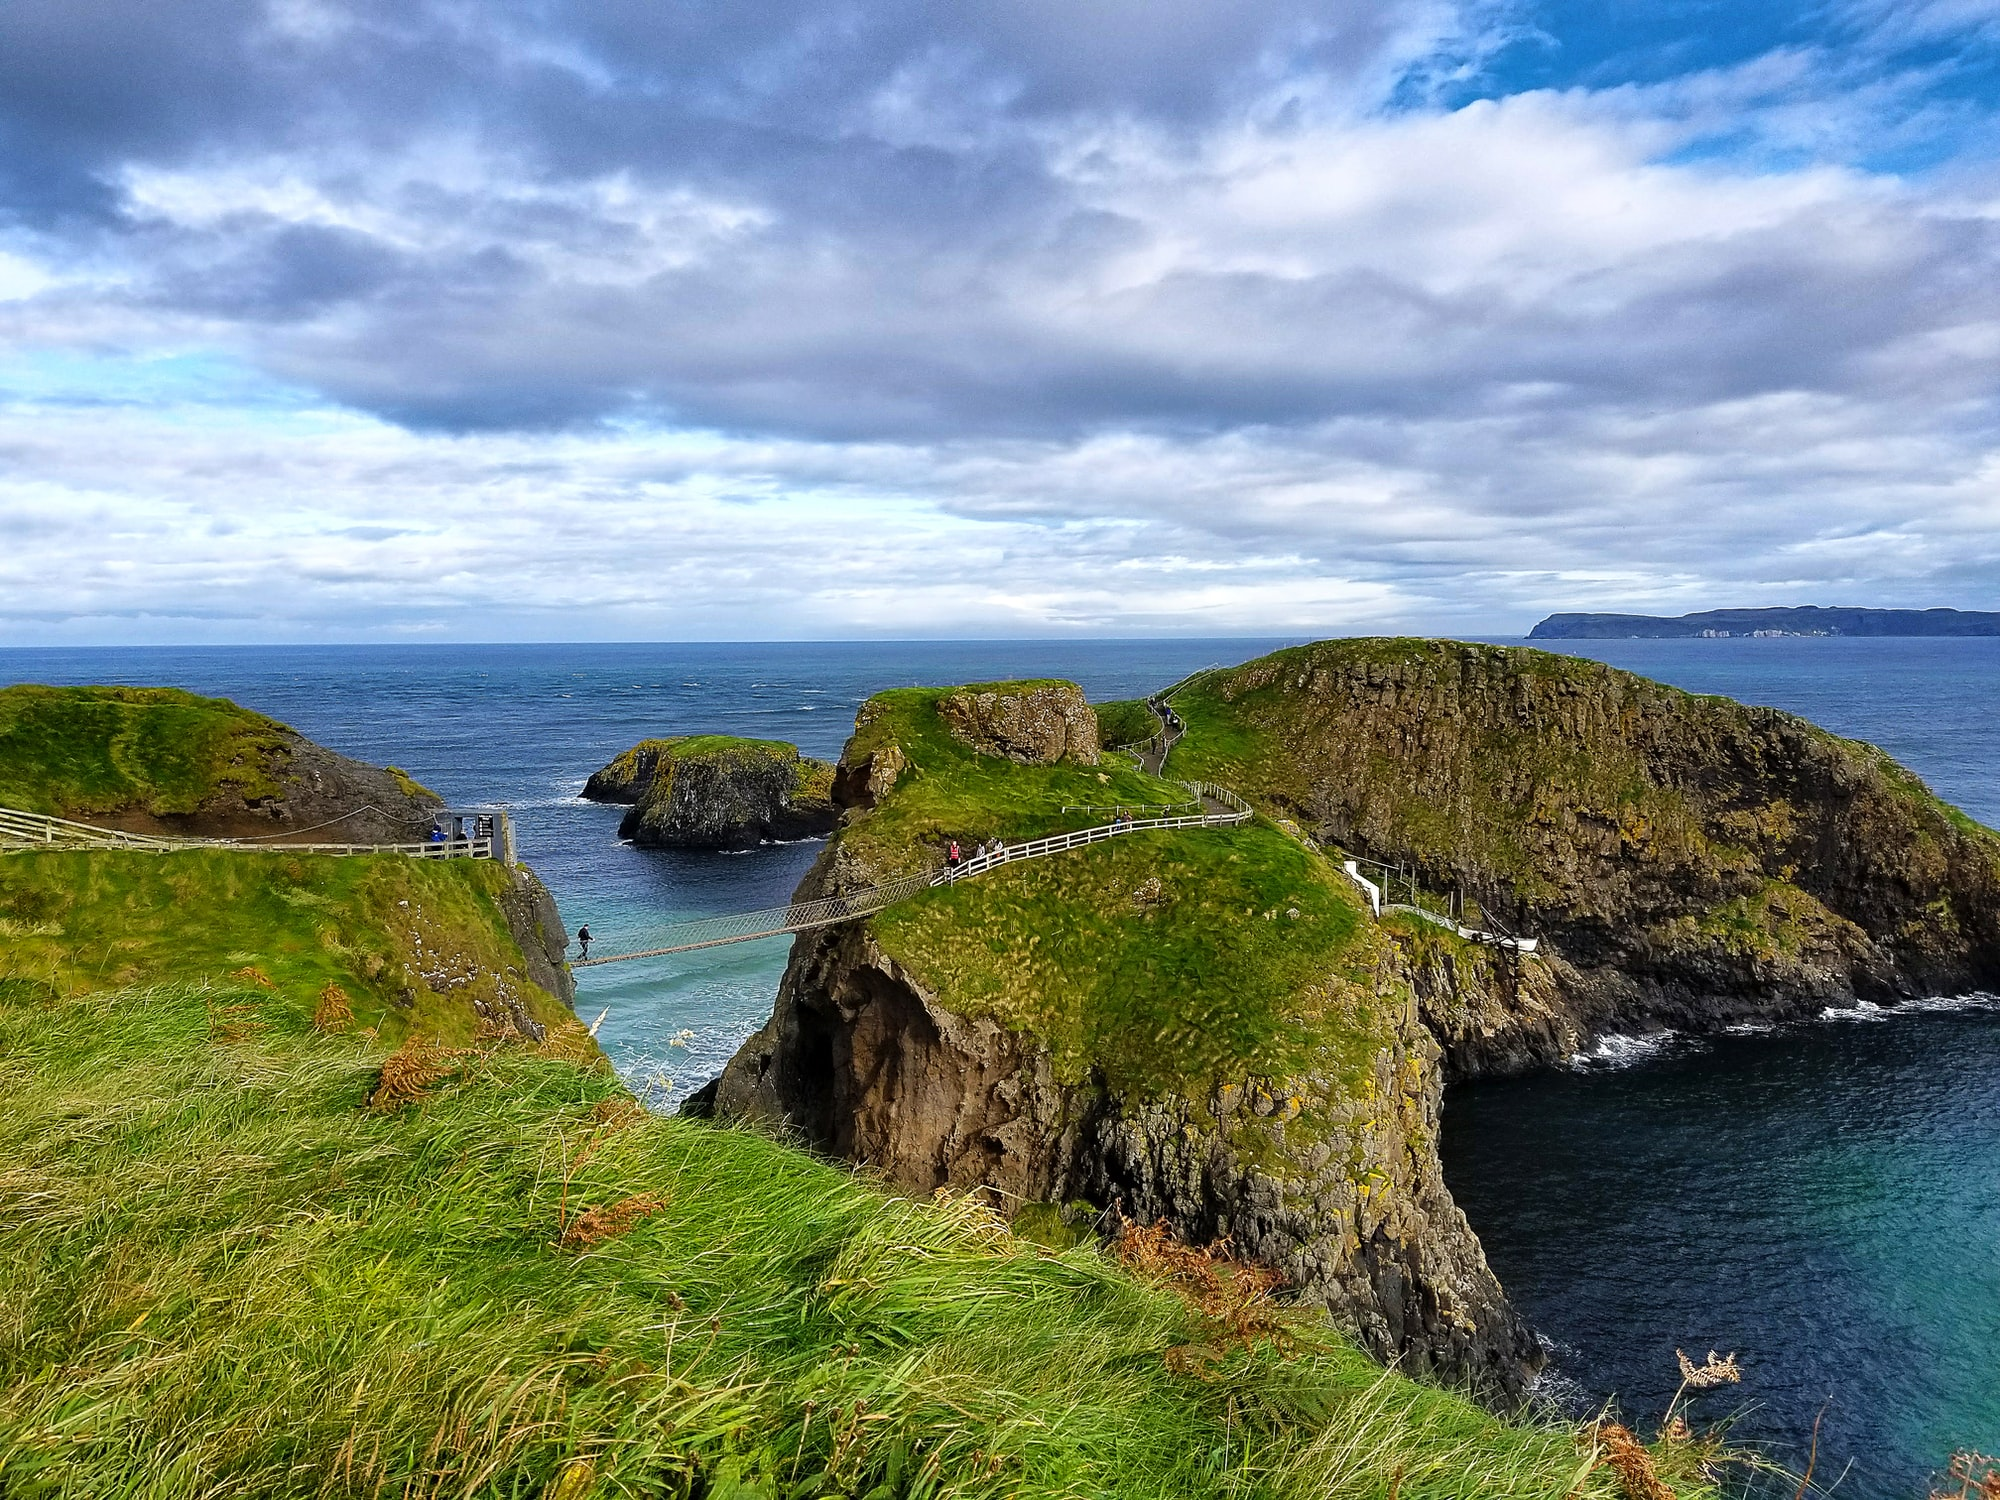 Up in Northern Ireland this tiny bridge is used to reach the island of Carrickarede.